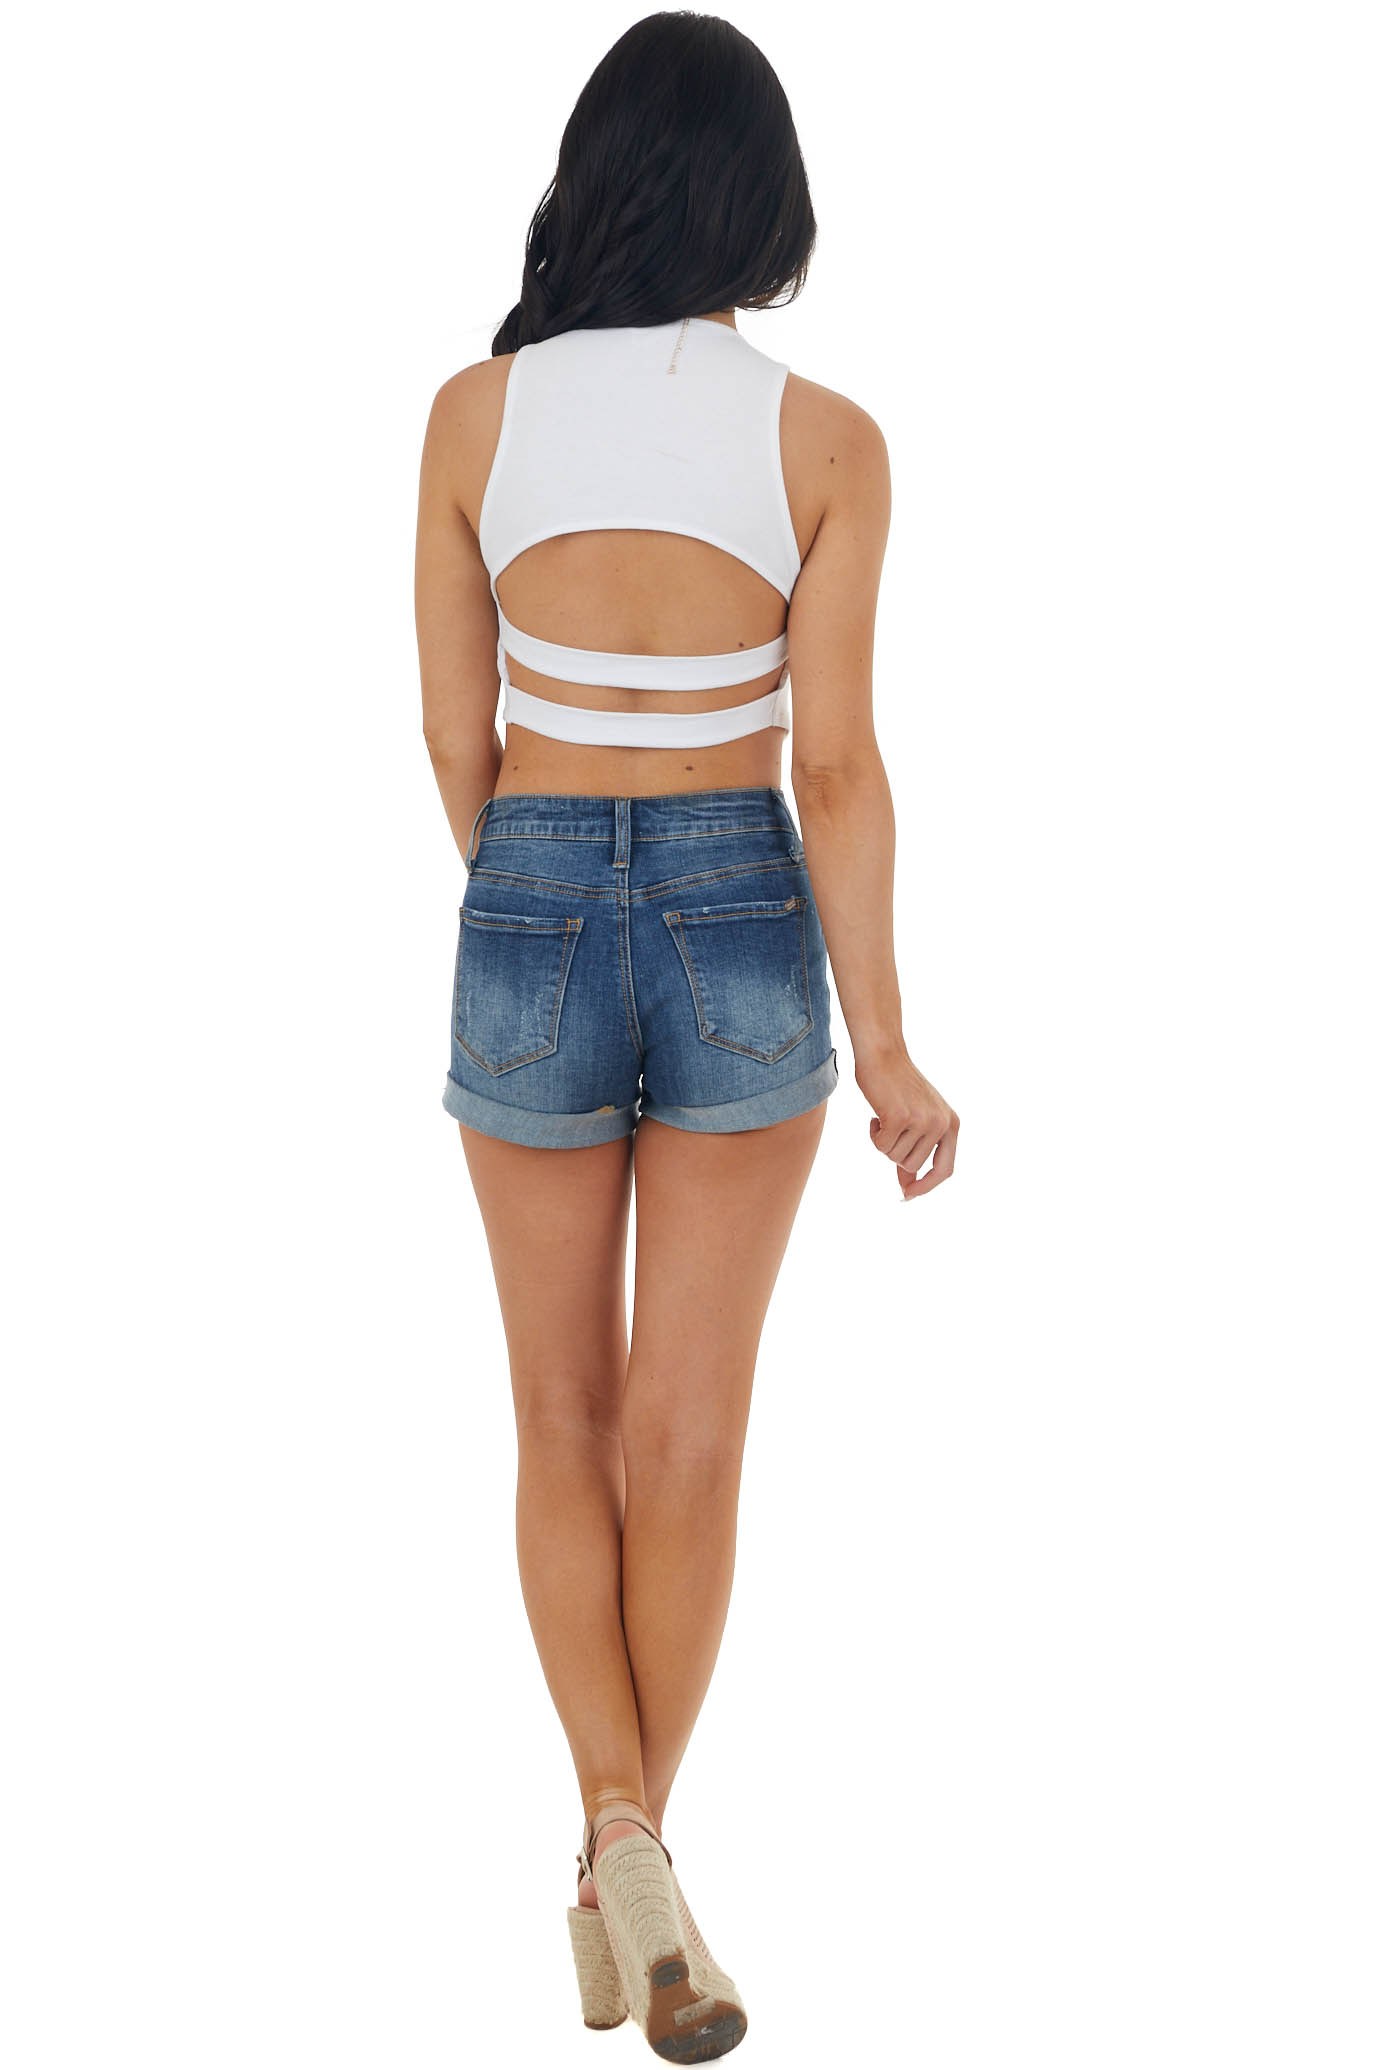 White Sleeveless Strappy Open Back Crop Top